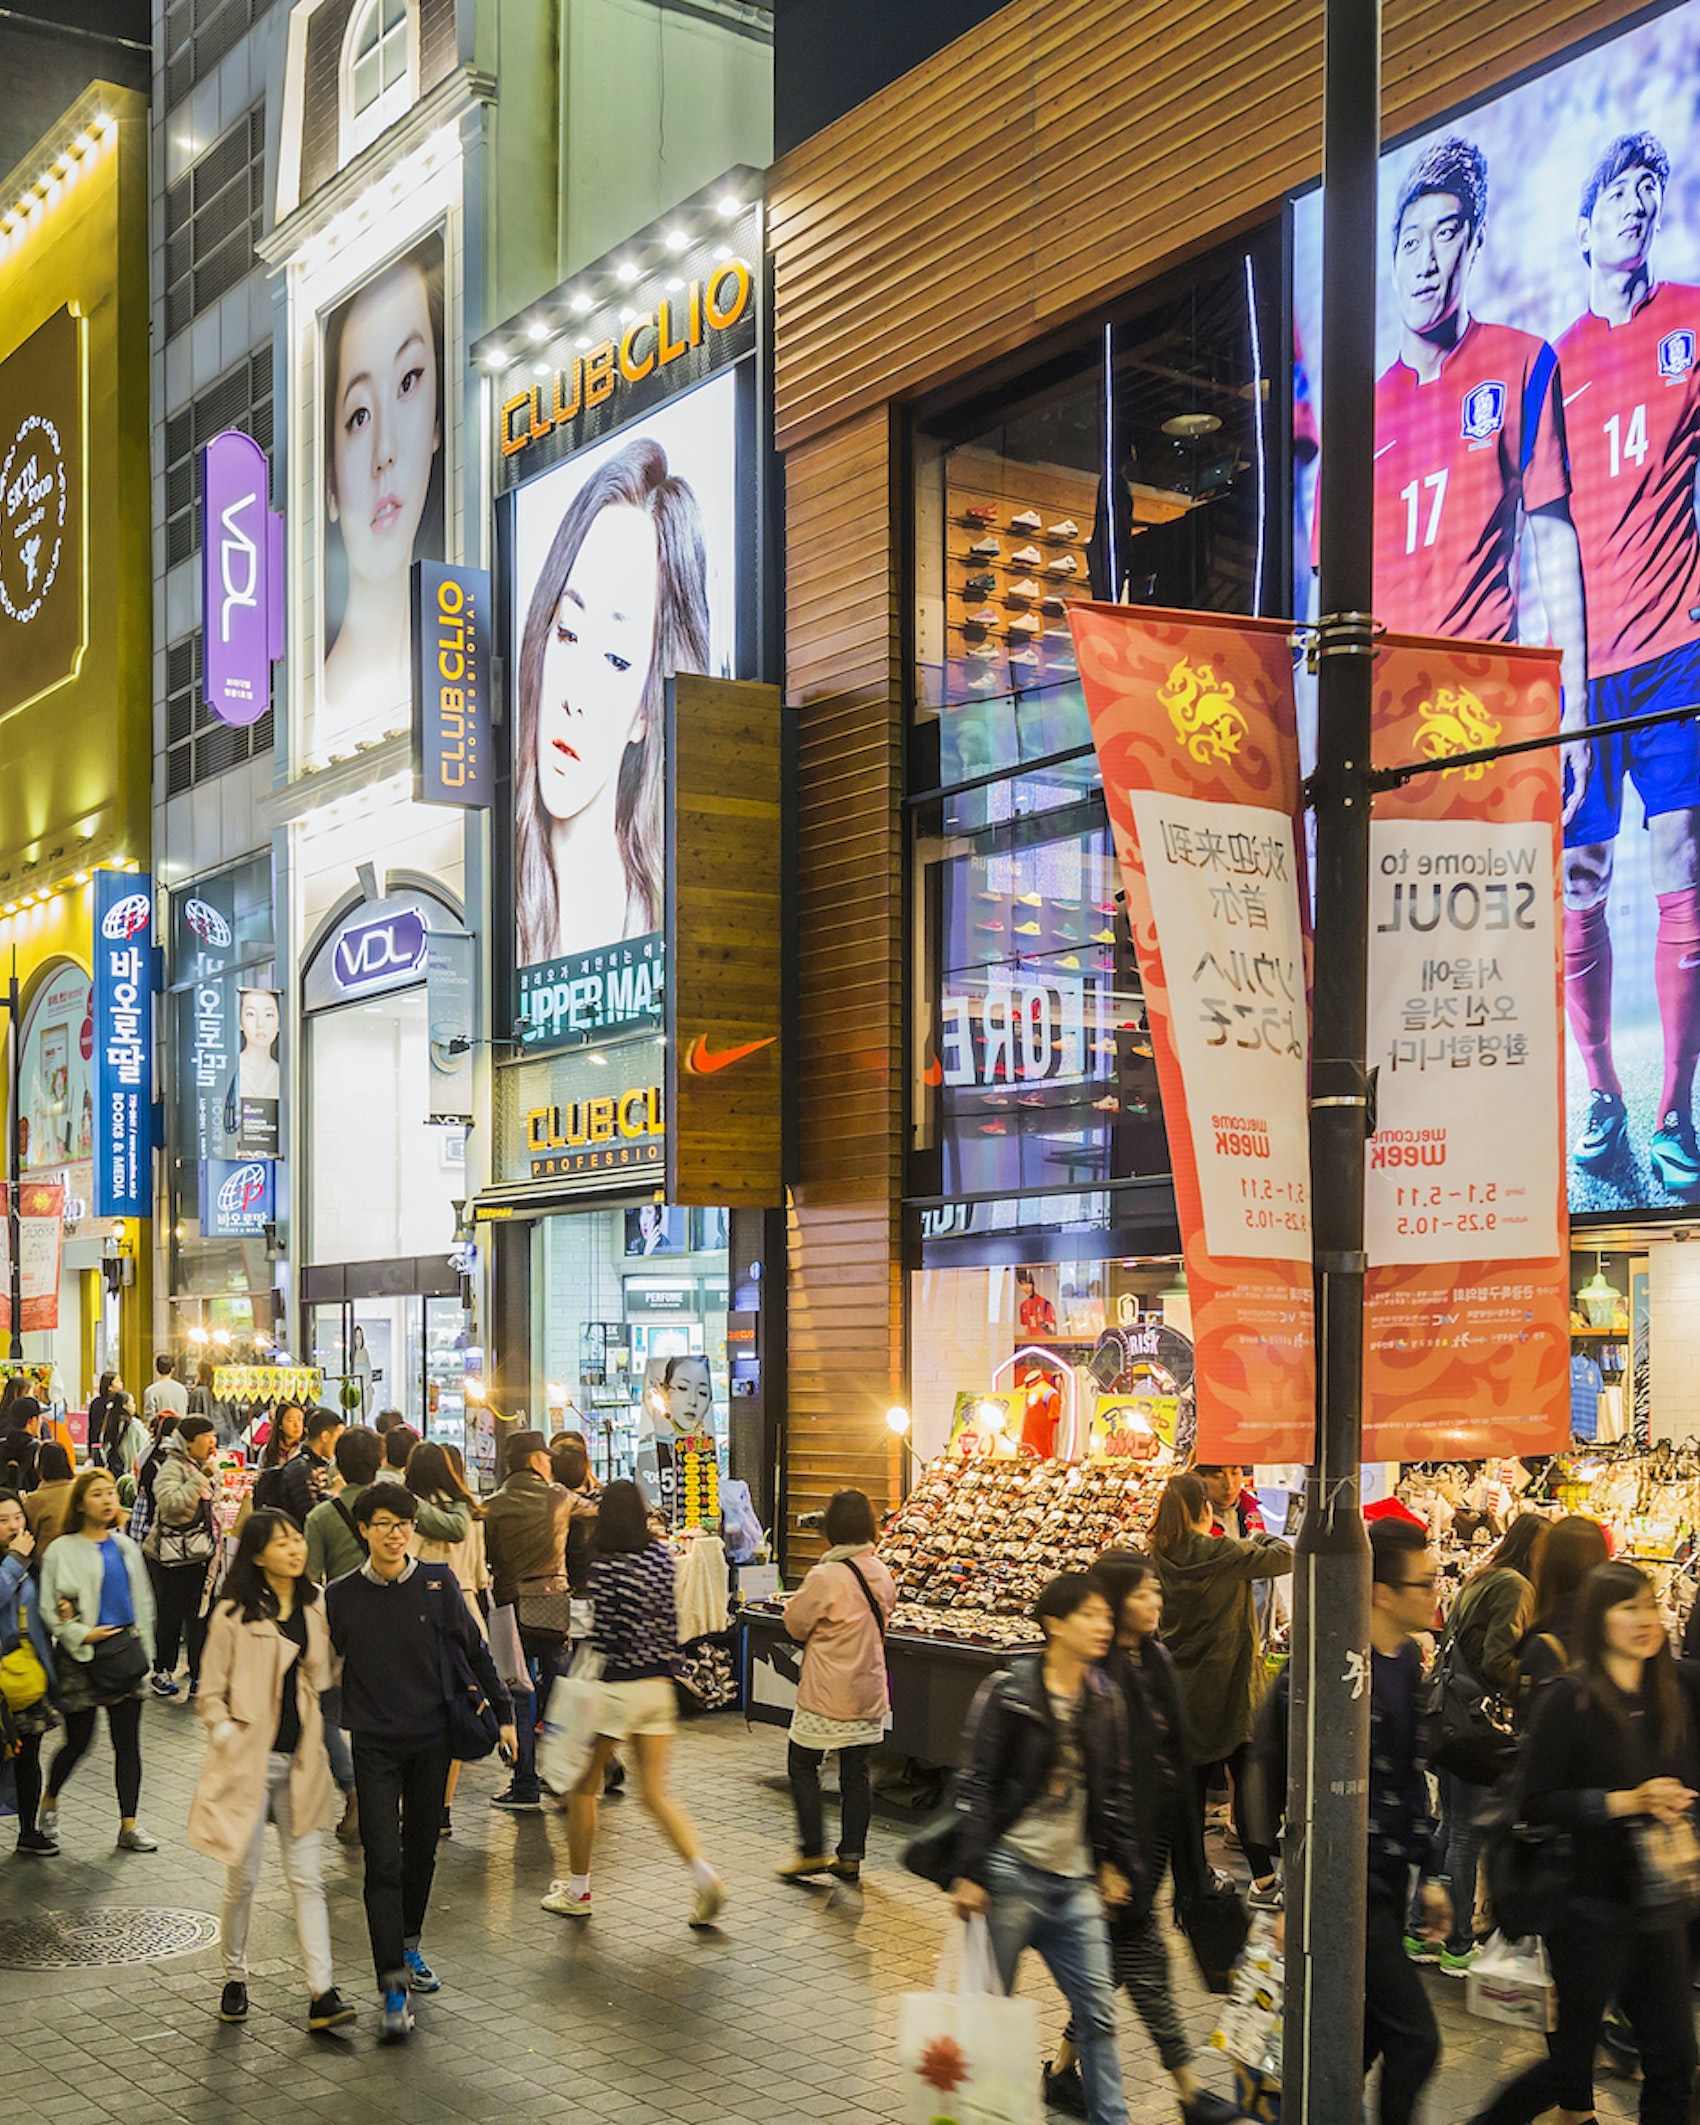 The famous shopping streets of Myeong-dong